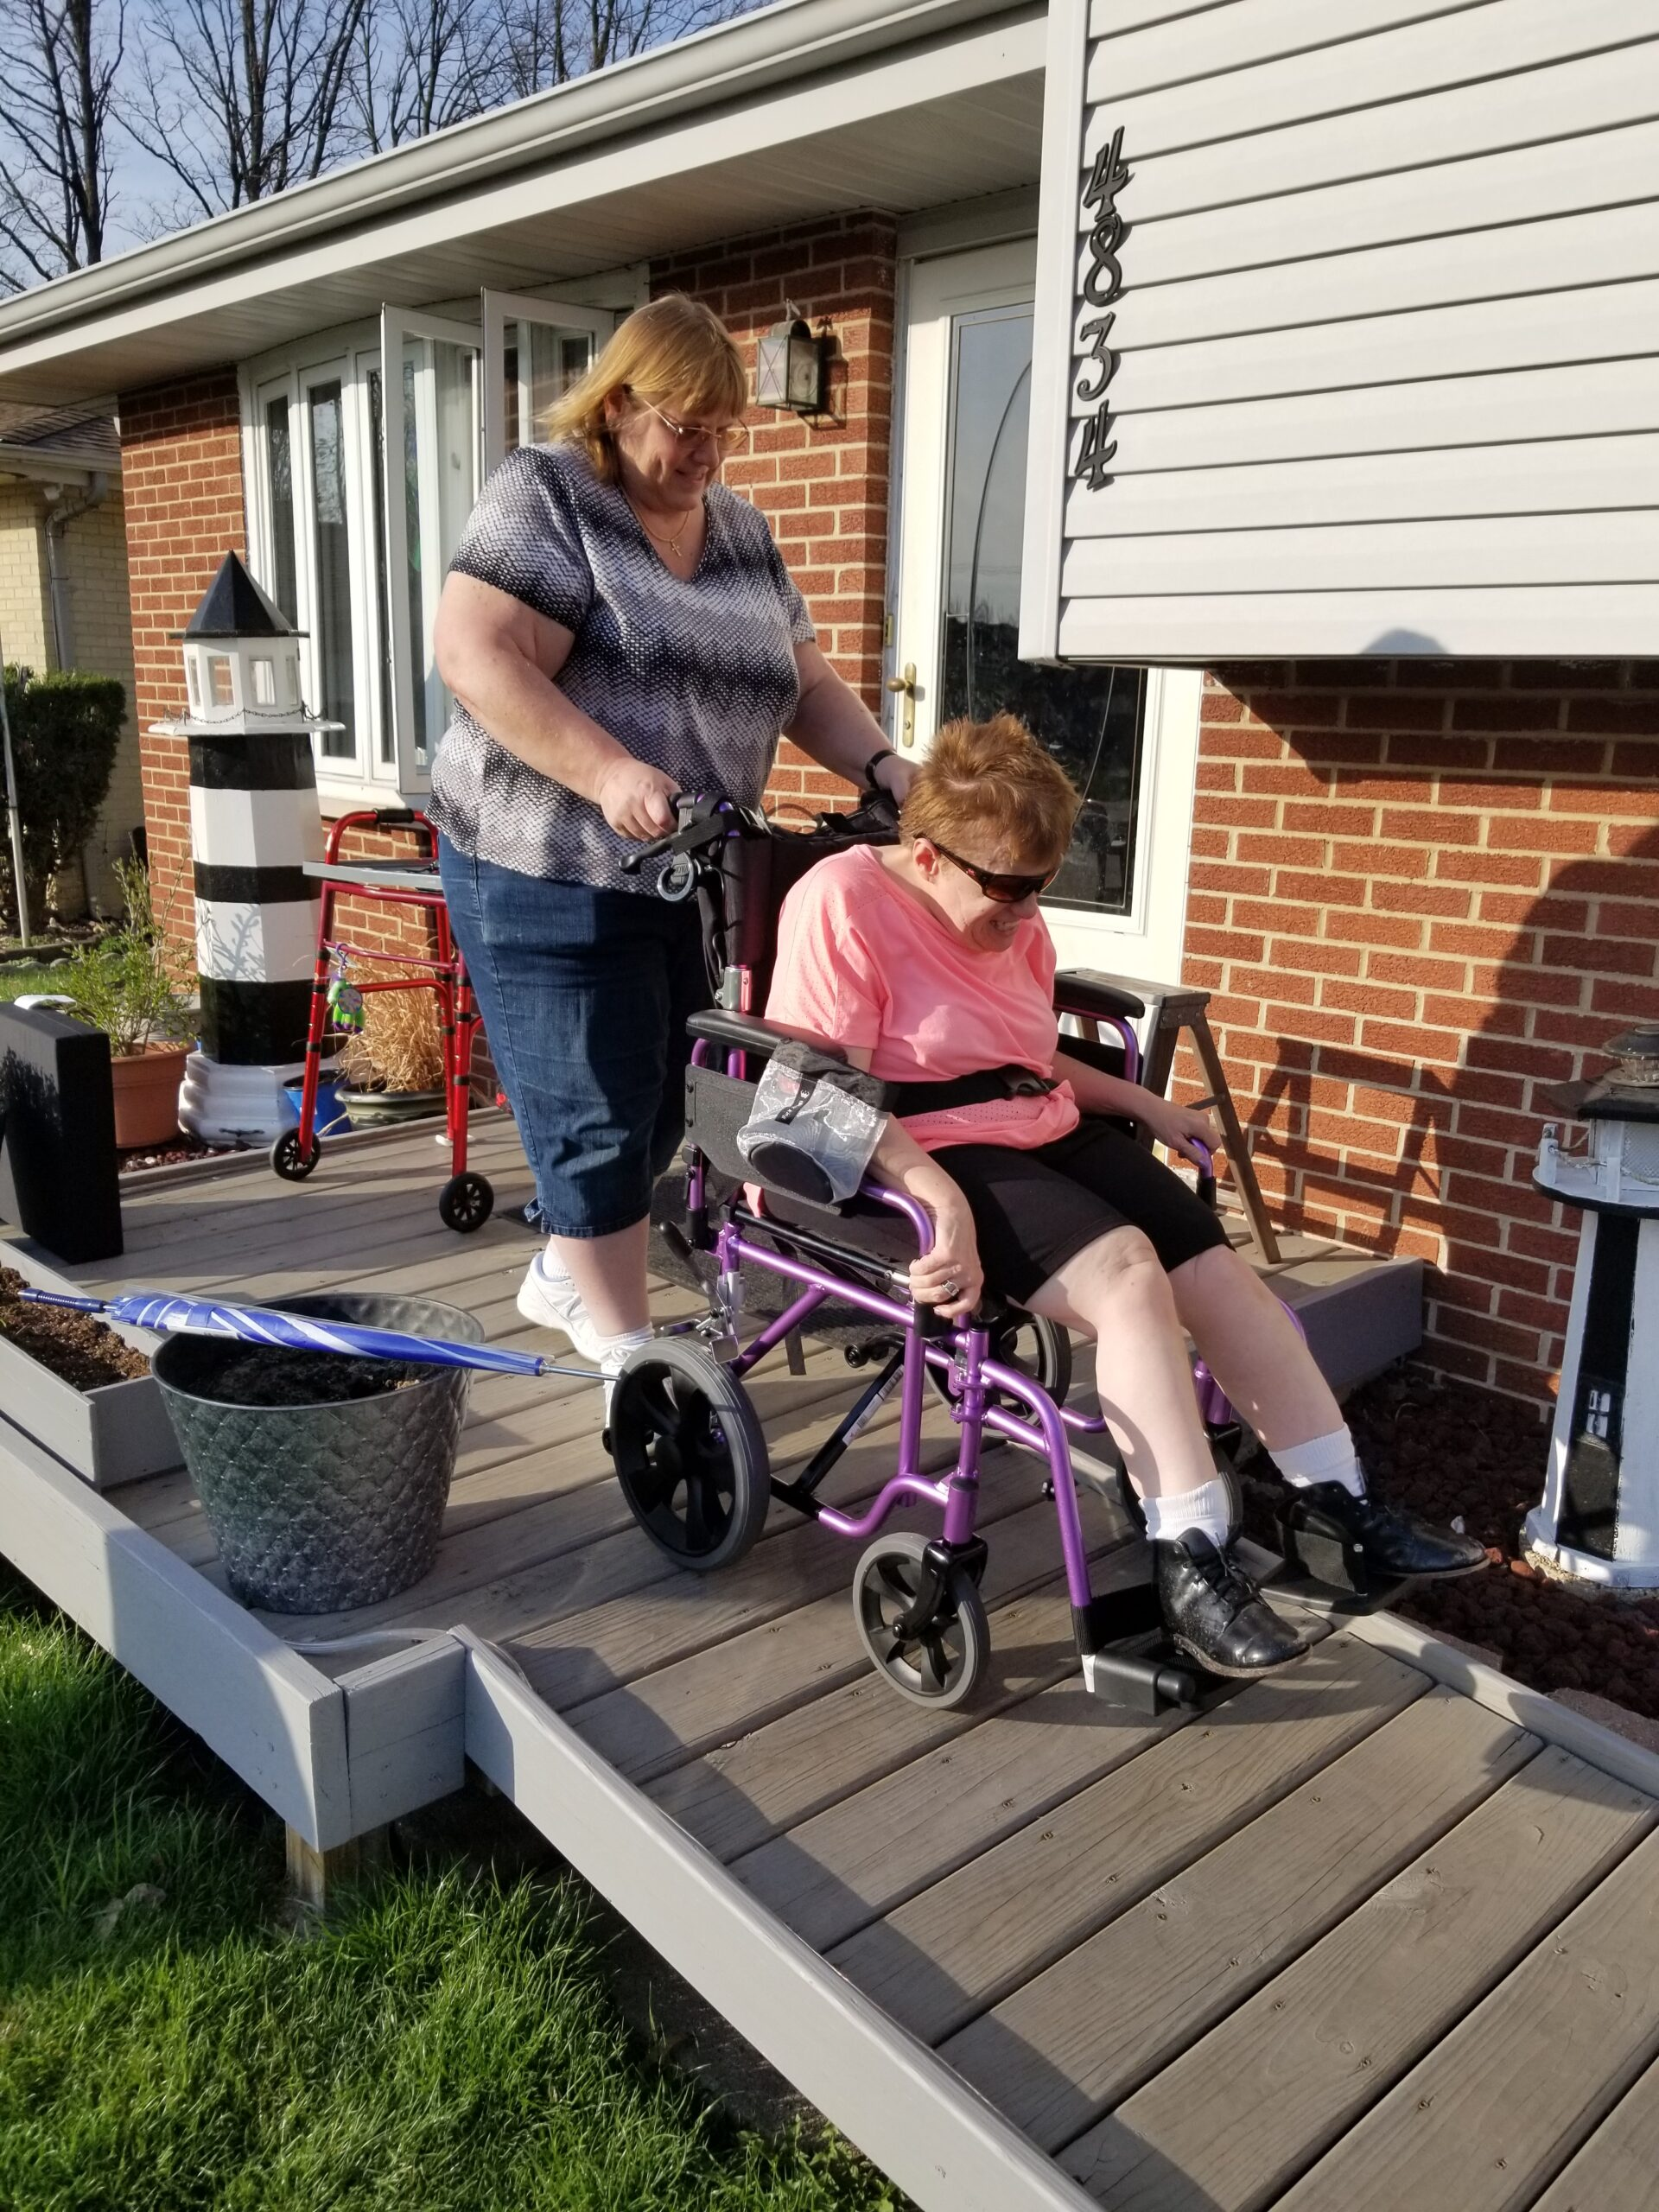 A woman is pushing another woman in a wheelchair on a wooden patio. The wheelchair is purple. The woman in the wheelchair is wearing a pink t shirt and sunglasses. She is smiling and obviously having fun. The woman pushing the chair has medium length hair and is wearing a grey shirt.